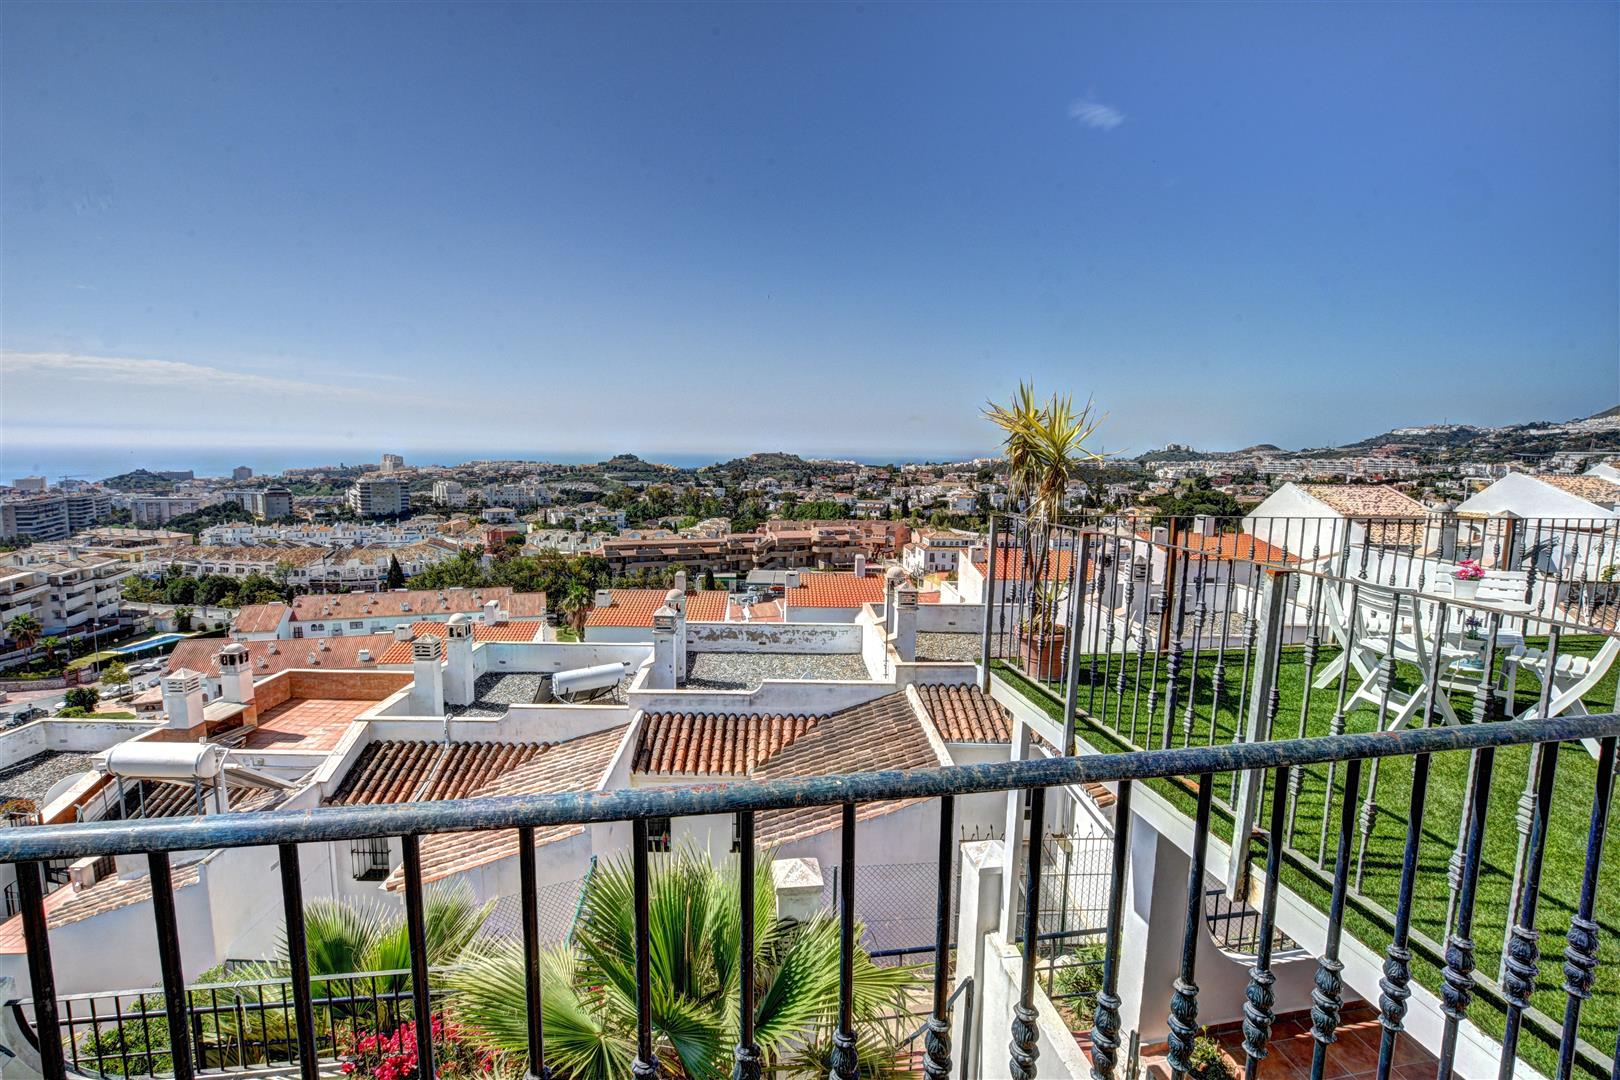 Townhouse for Sale in Arroyo de la Miel - sea views